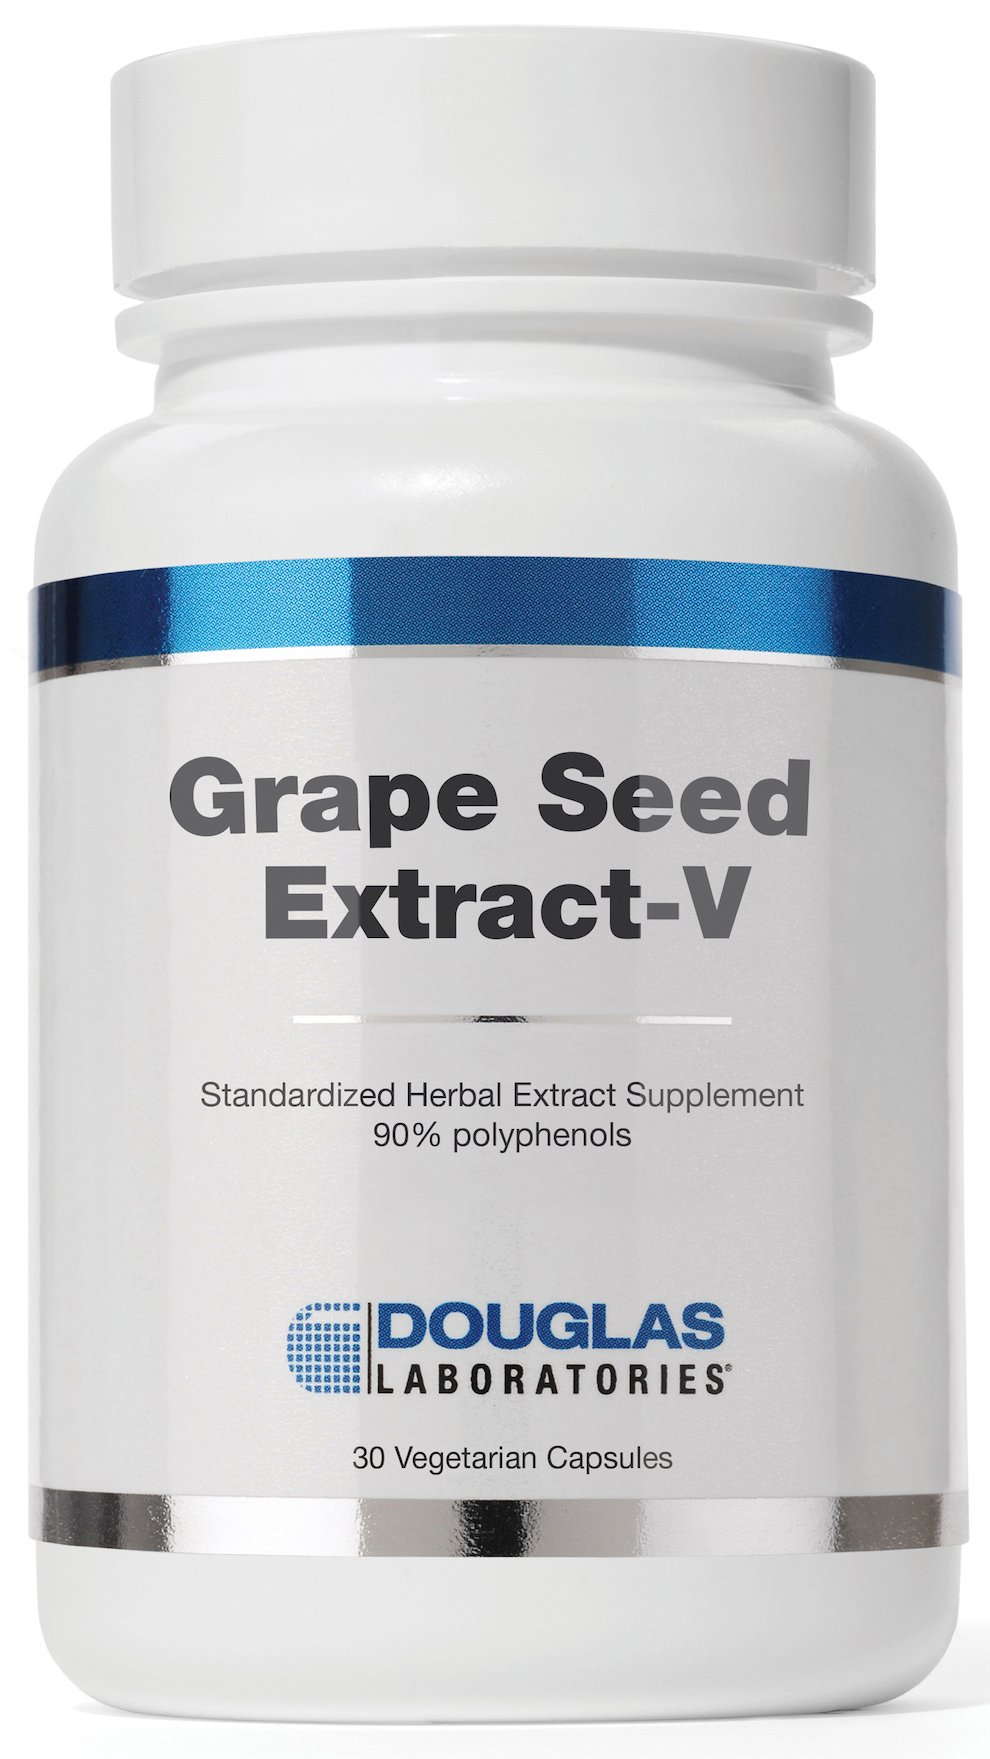 Douglas Laboratories® - Grape Seed Extract-V - Grape Seed Extract for Vascular Support* - 30 Capsules